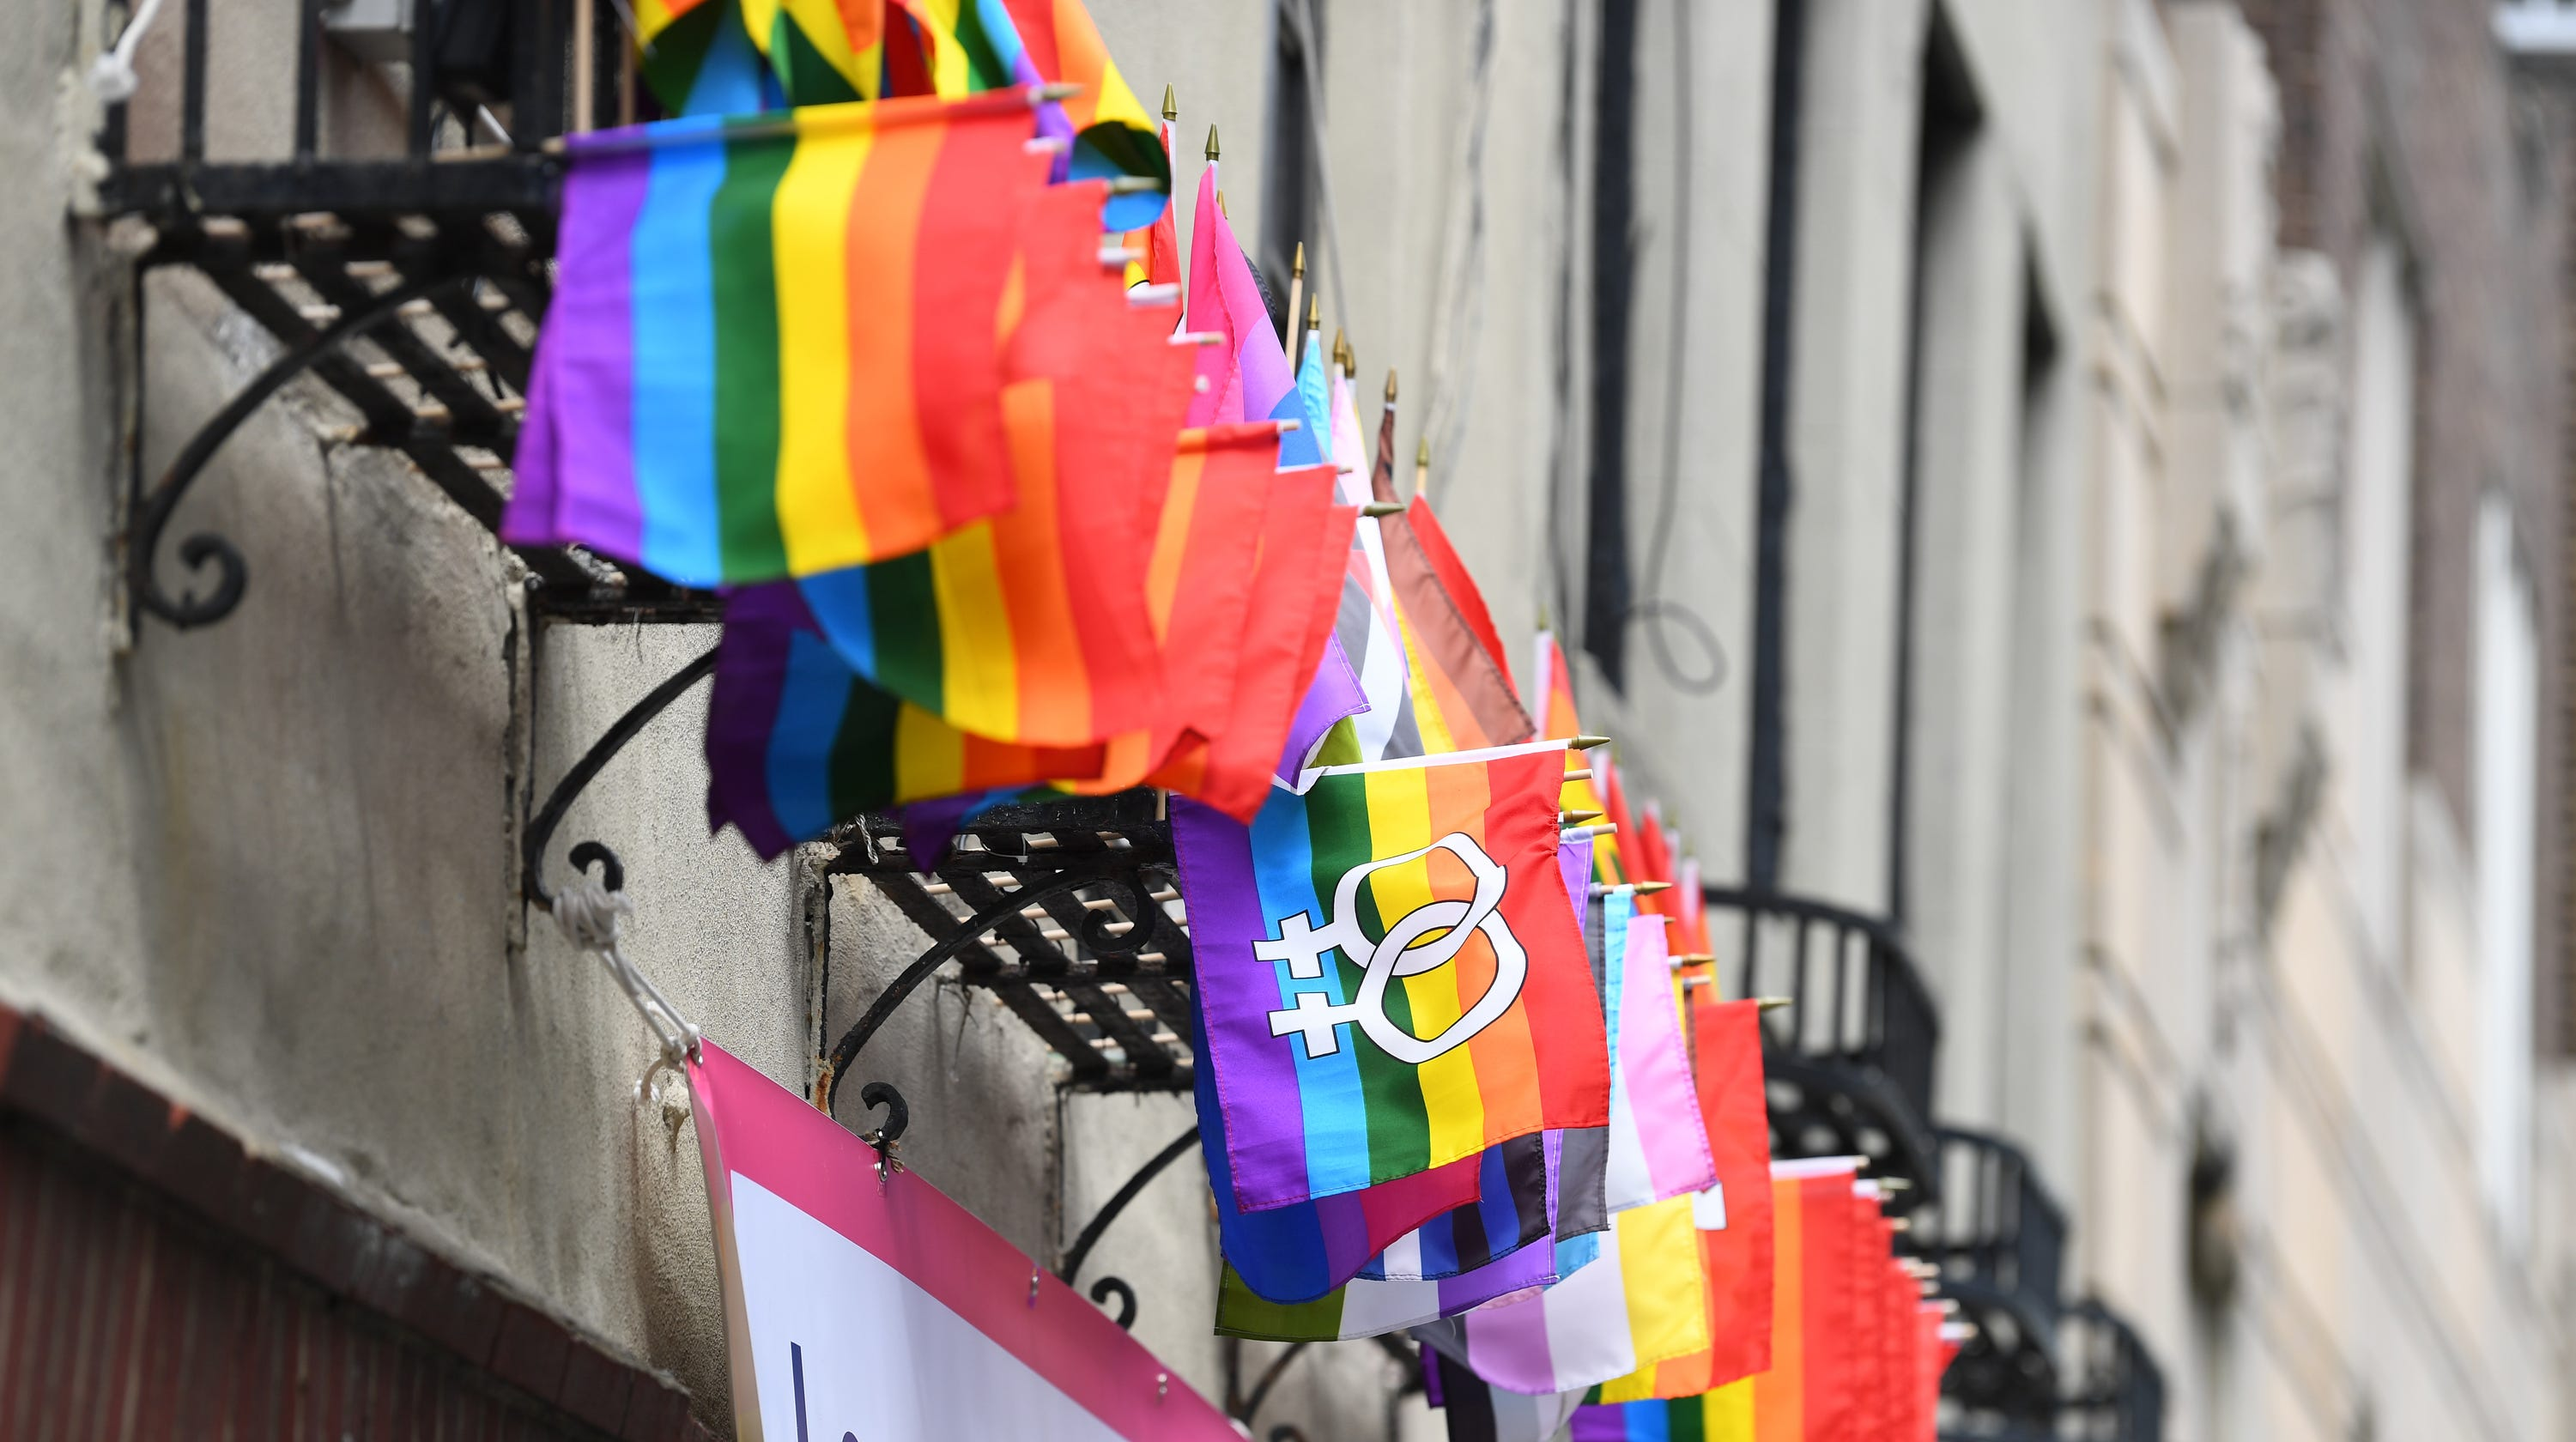 LGBTQ acceptance among young people is on the decline: GLAAD